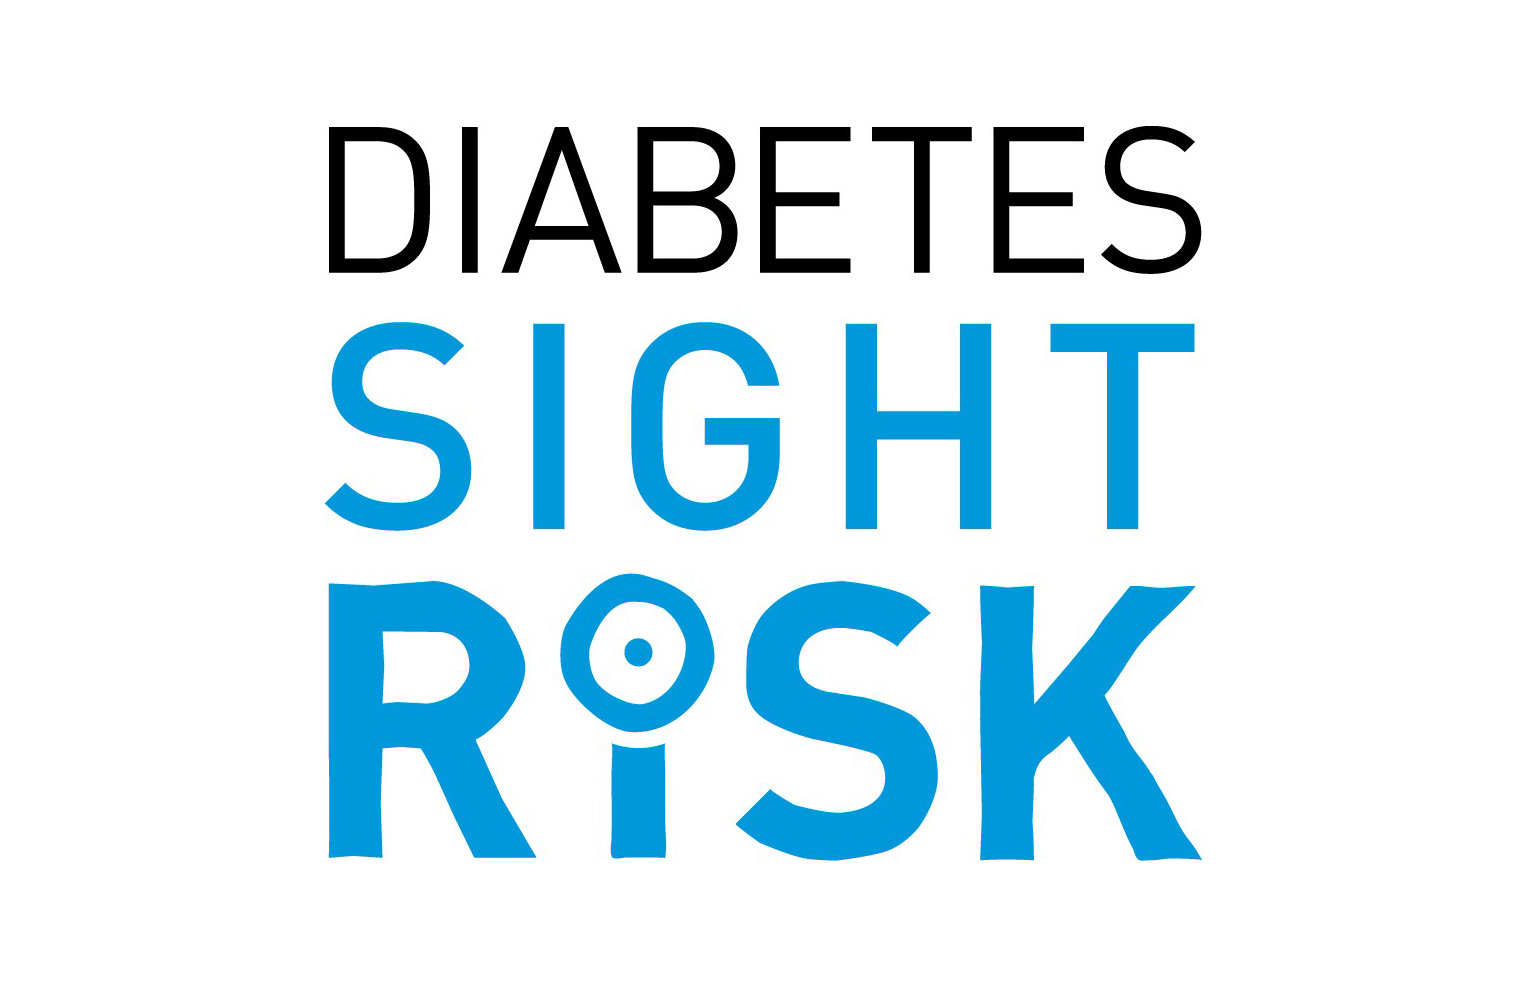 A new resource offers people living with diabetes information about diabetes-related eye disease including facts and symptoms, as well as details around comprehensive dilated eye exams.